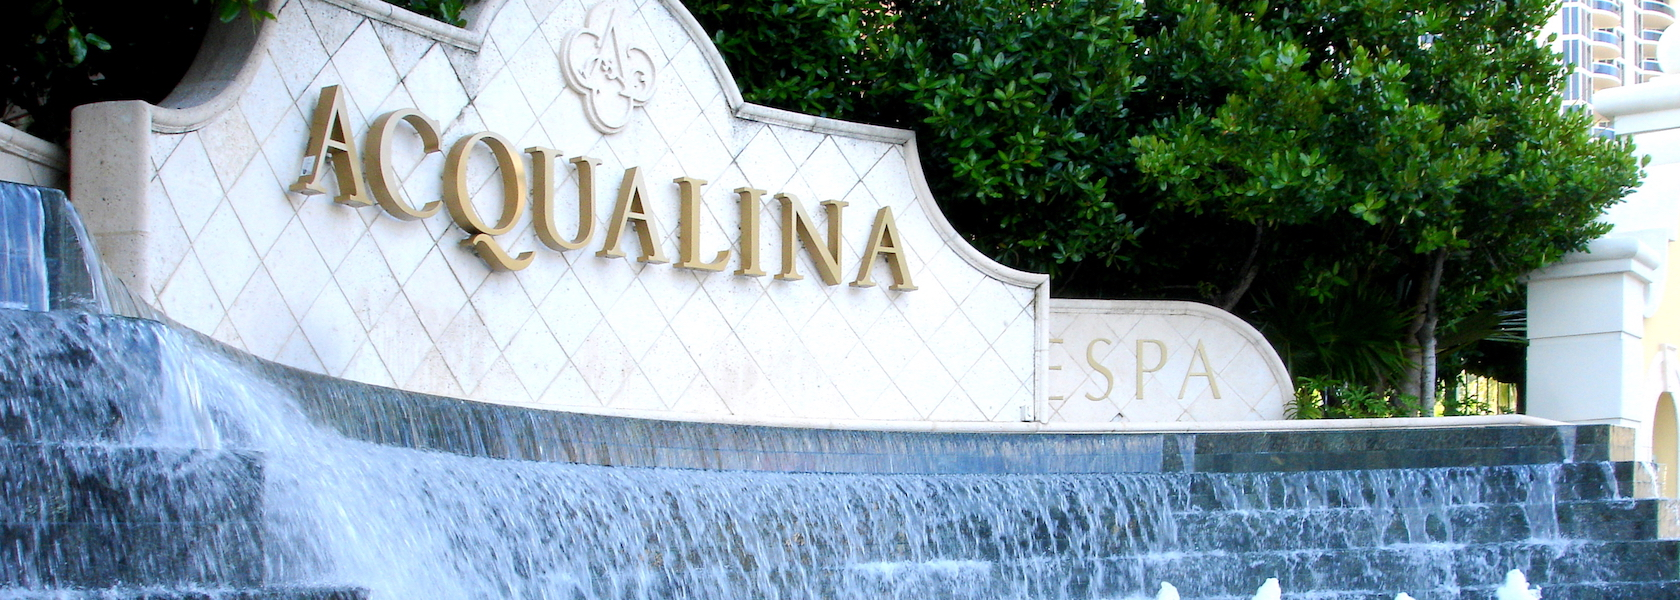 Granite signage with Acqualina on it